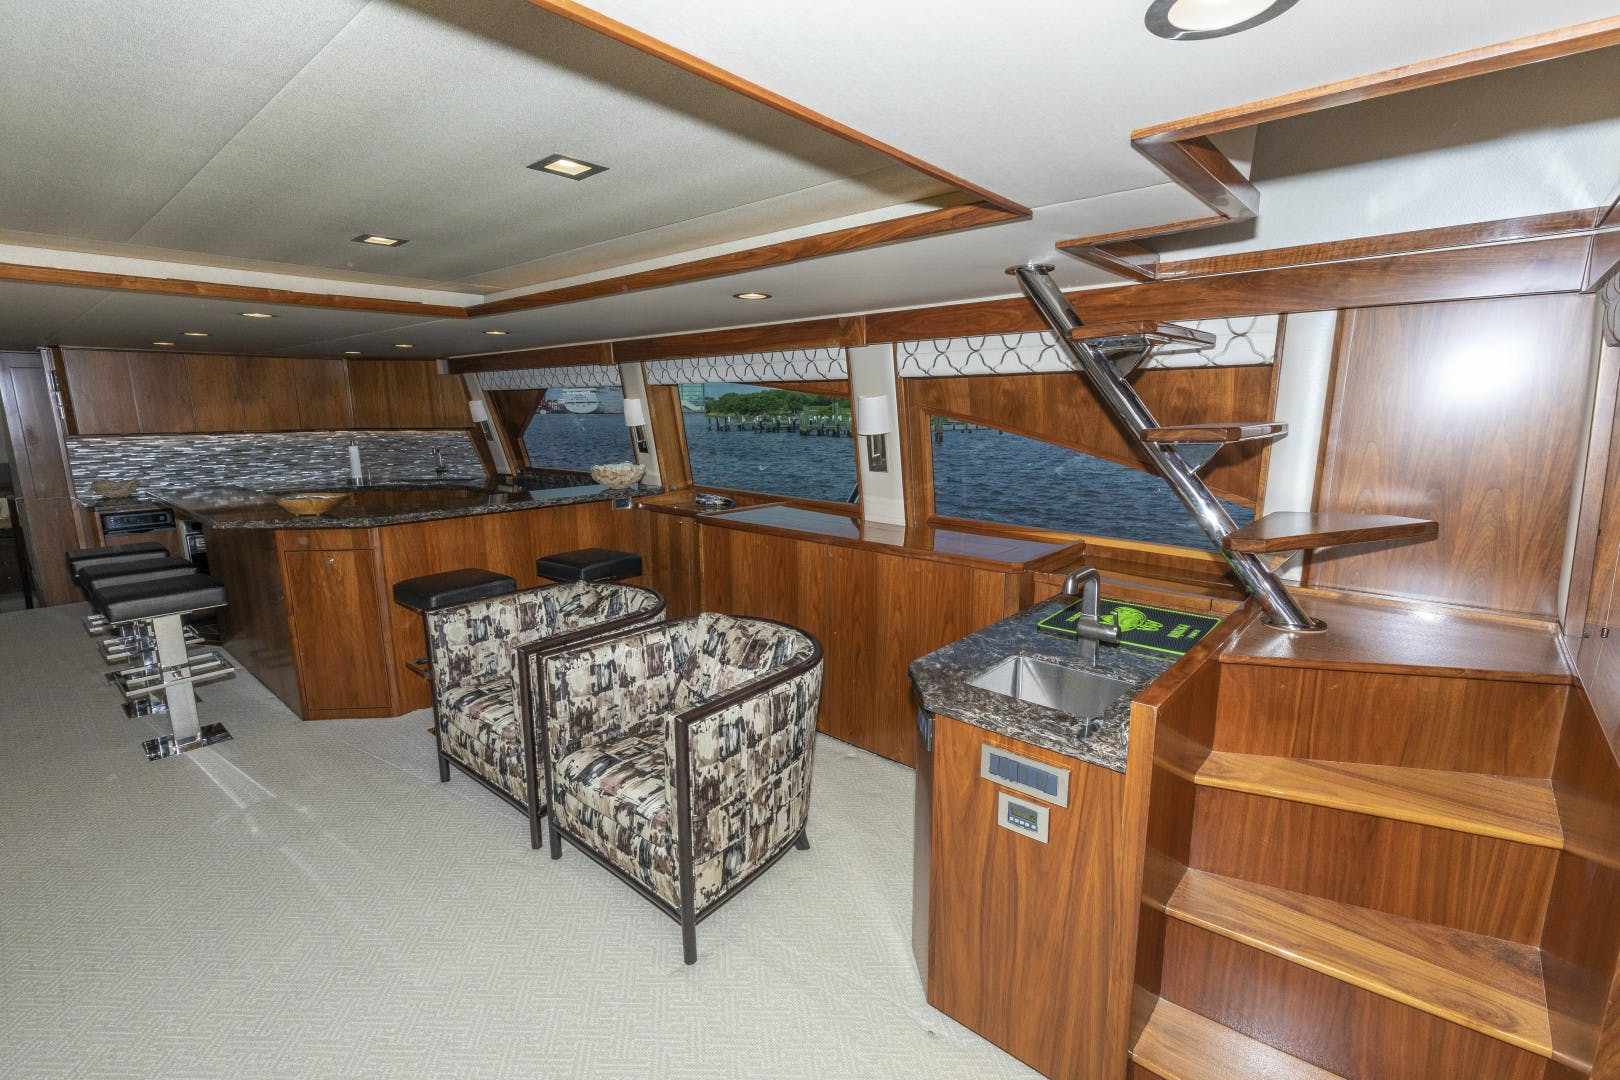 2016 Viking 92' Enclosed Bridge Sportfish Fa La Me | Picture 8 of 103